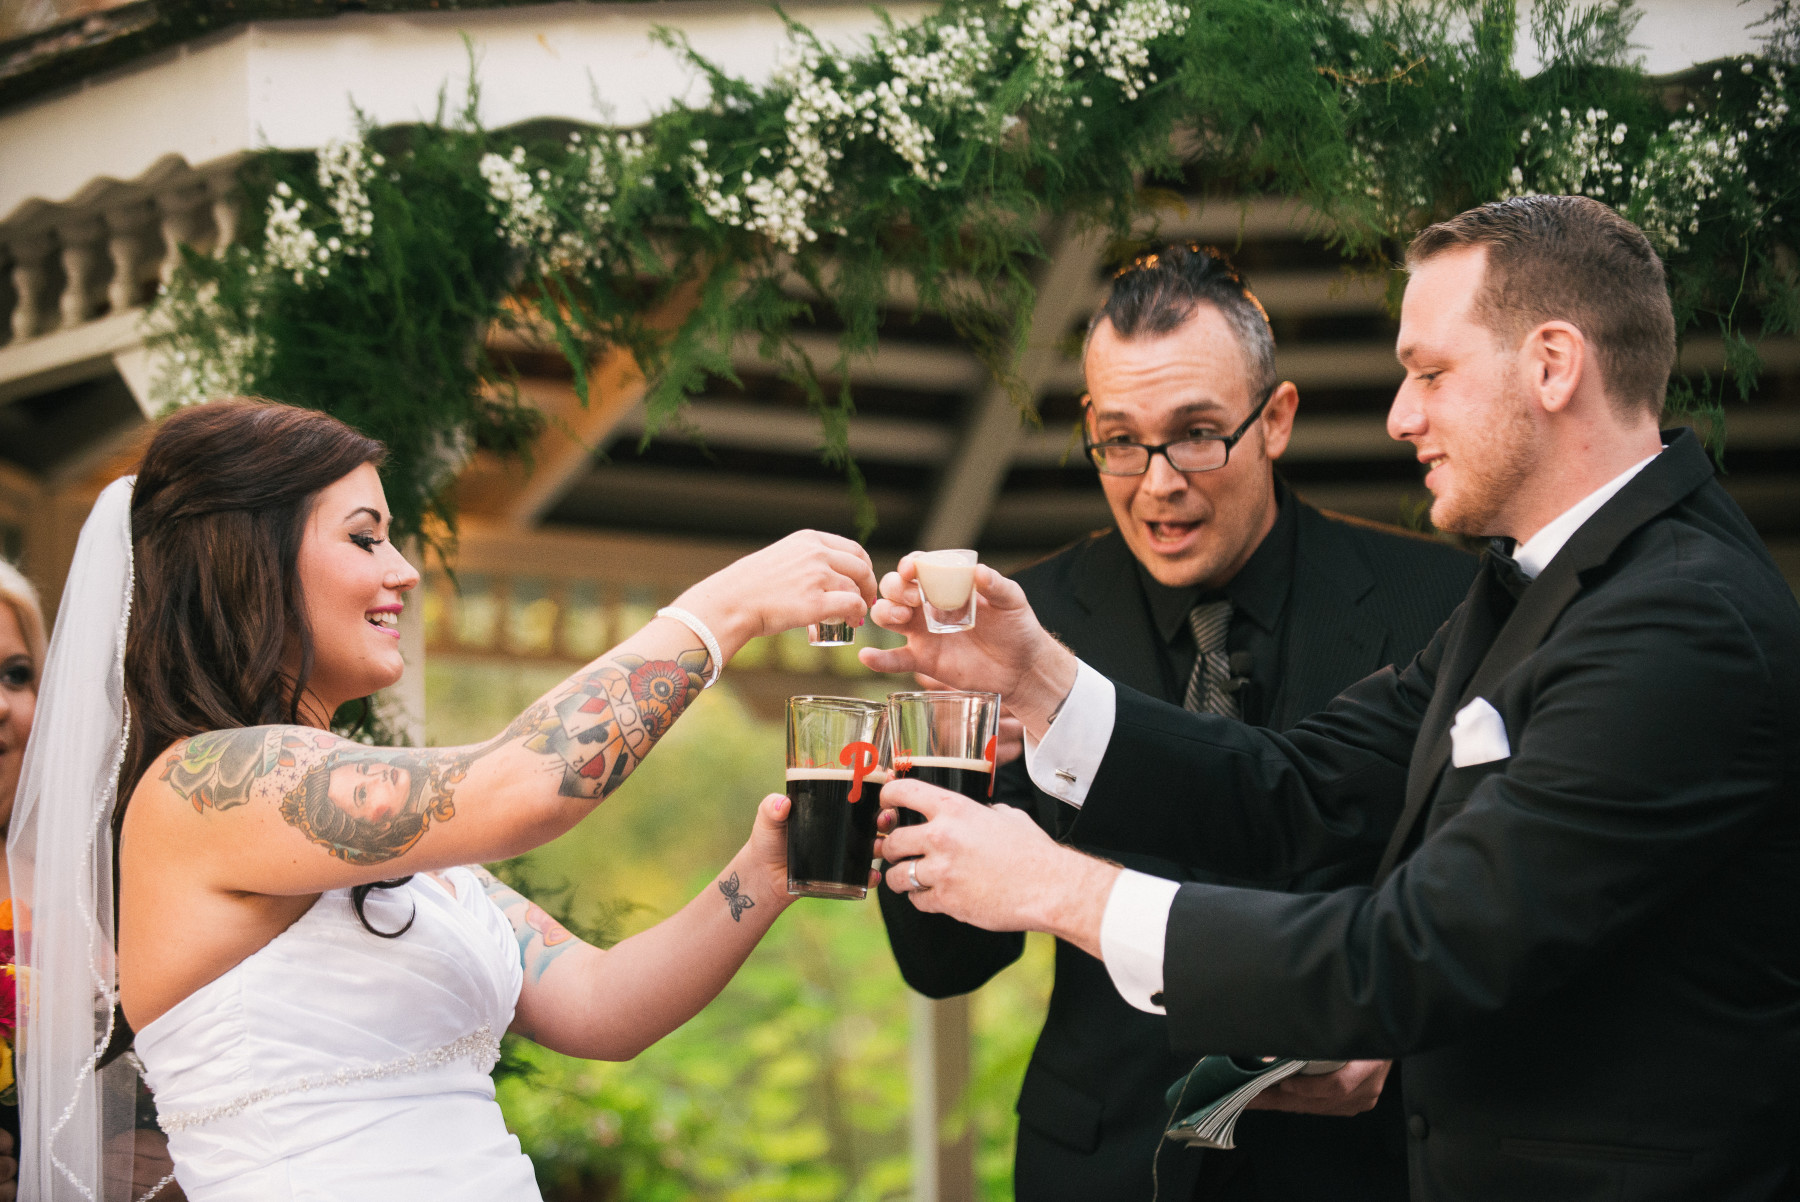 This outdoor wedding near West Chester, Pa shows off a fun new unique tradition.  Have you ever thought about doing an Irish Car Bomb on your wedding day?  Neither did I until I saw this couple make it happen.  The officiant ended up finishing part of the bride's drink.  Even if it's not your cup of tea as they say, you have to admit this wedding tradition takes the cake for being unique.  Want us to photograph your wedding?  Just shoot us a message on the contact me page.